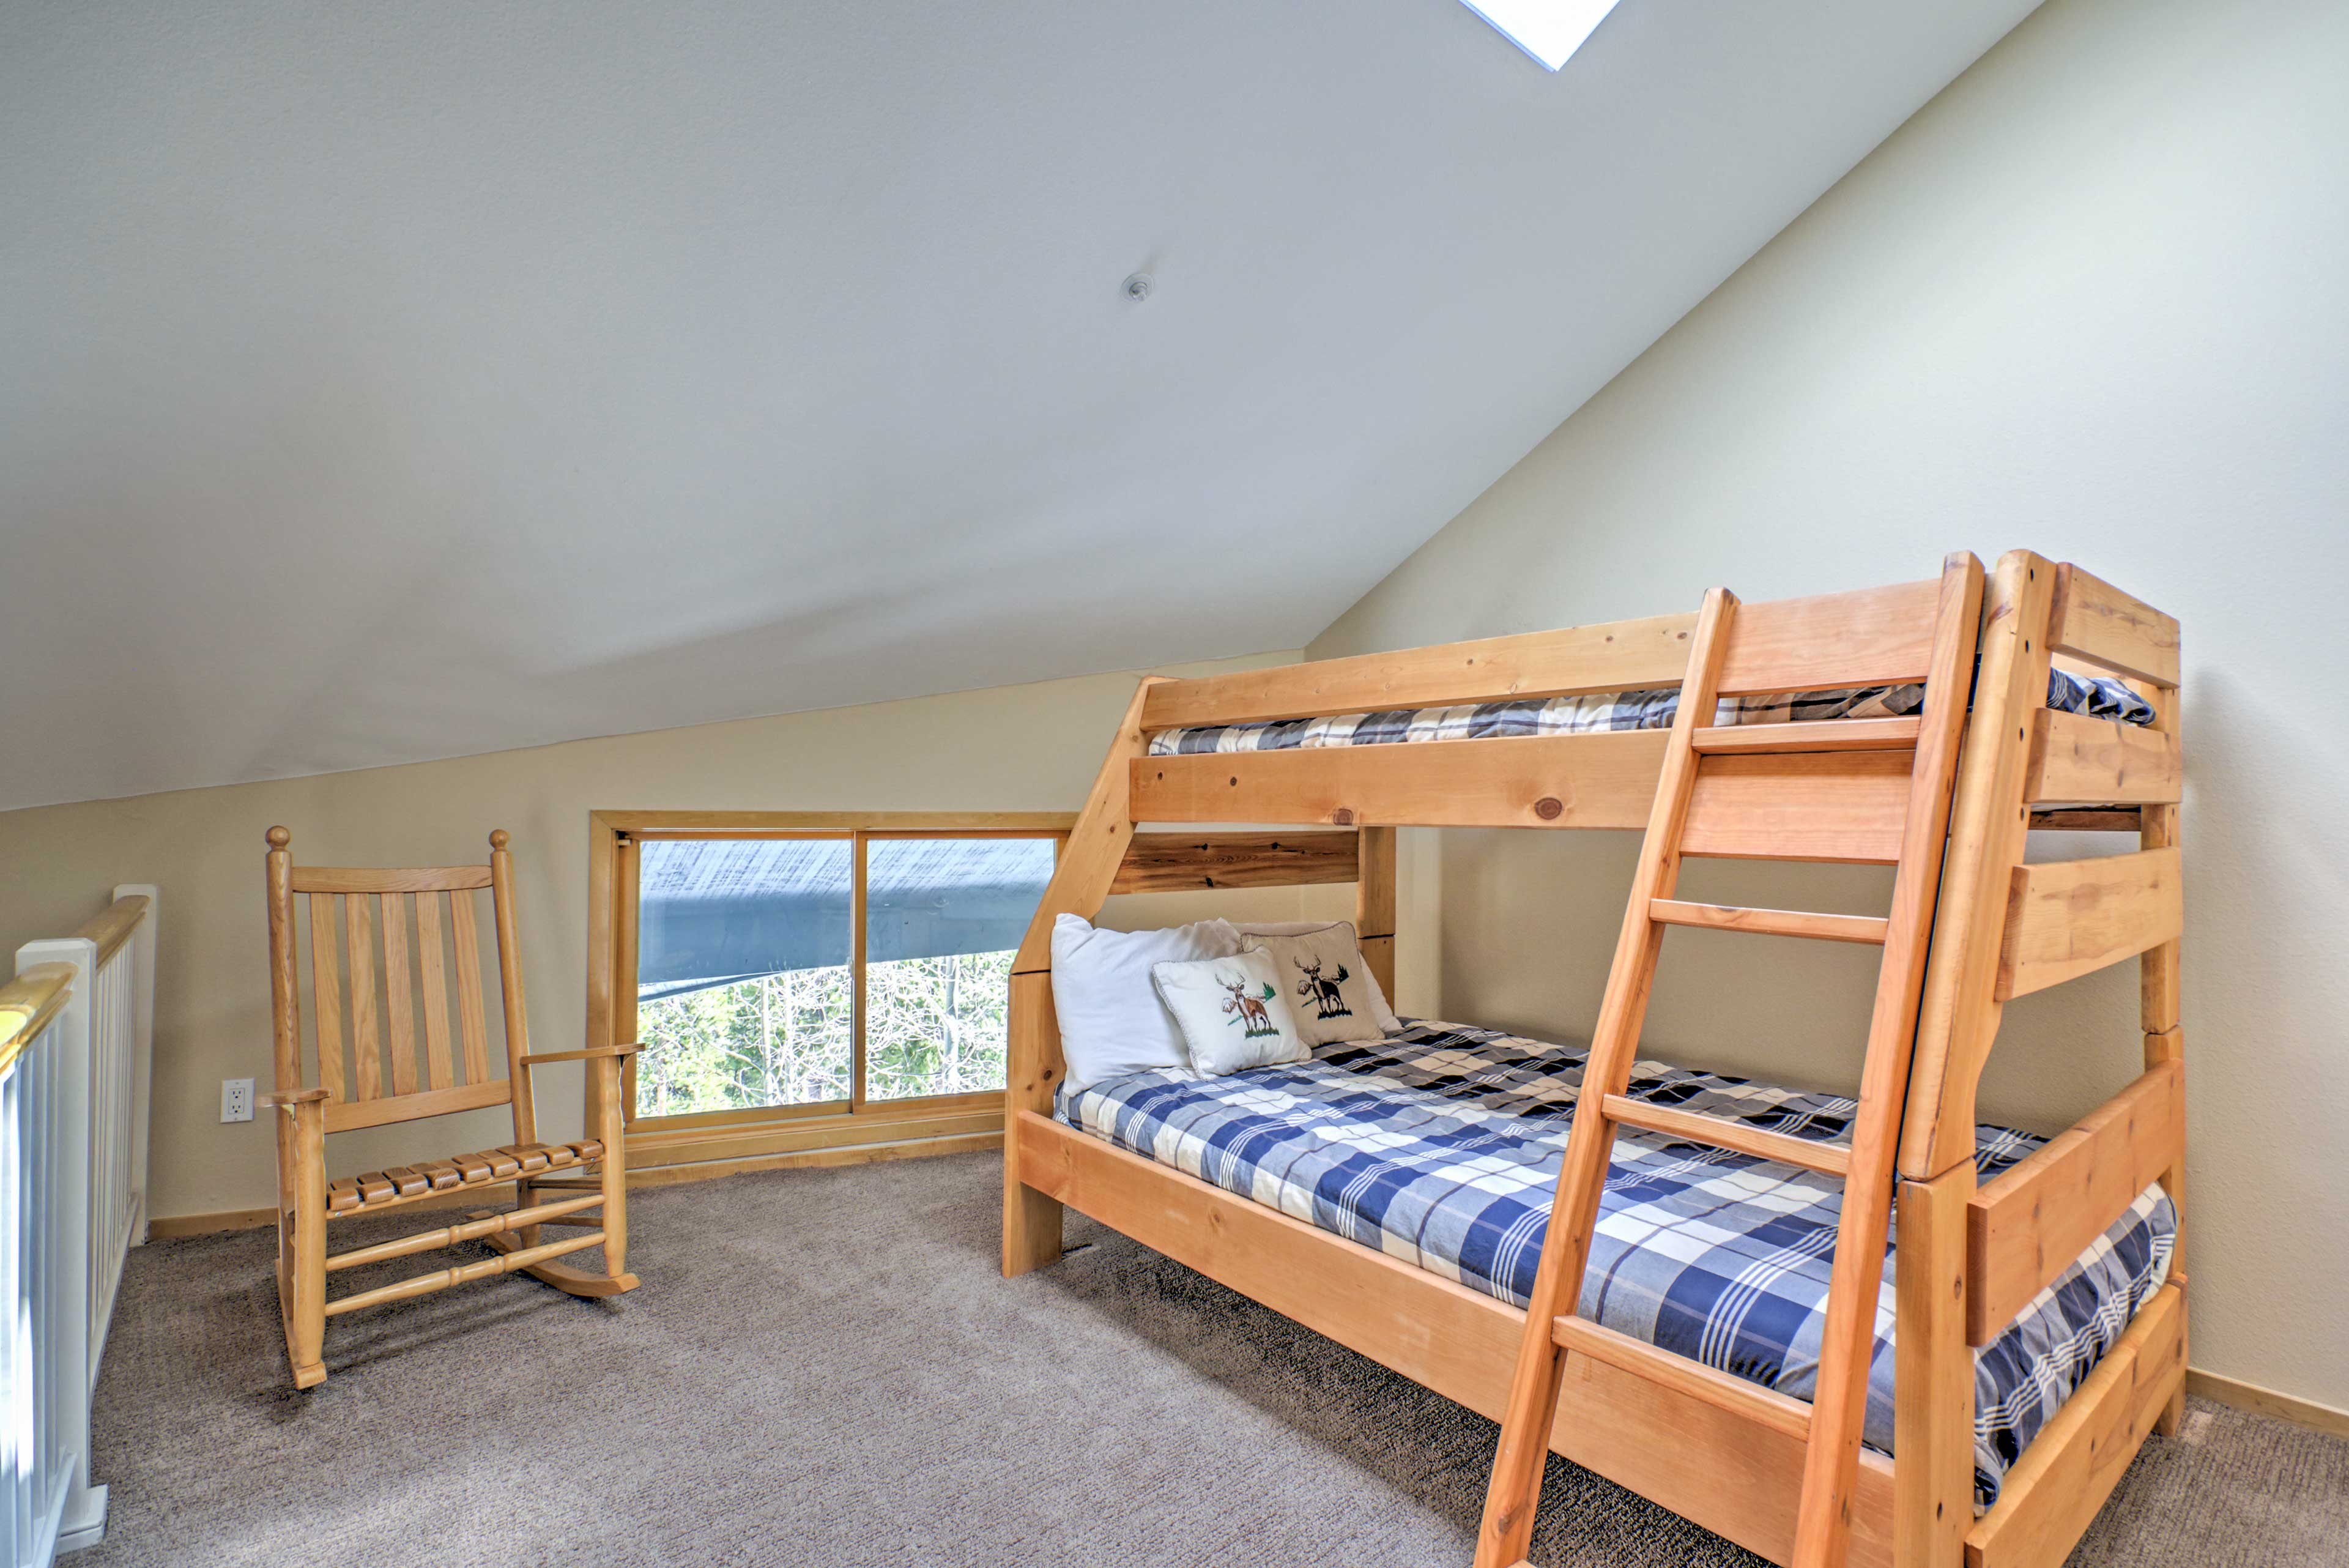 The loft area features a twin-over-full bunk bed that accommodates 3 guests!